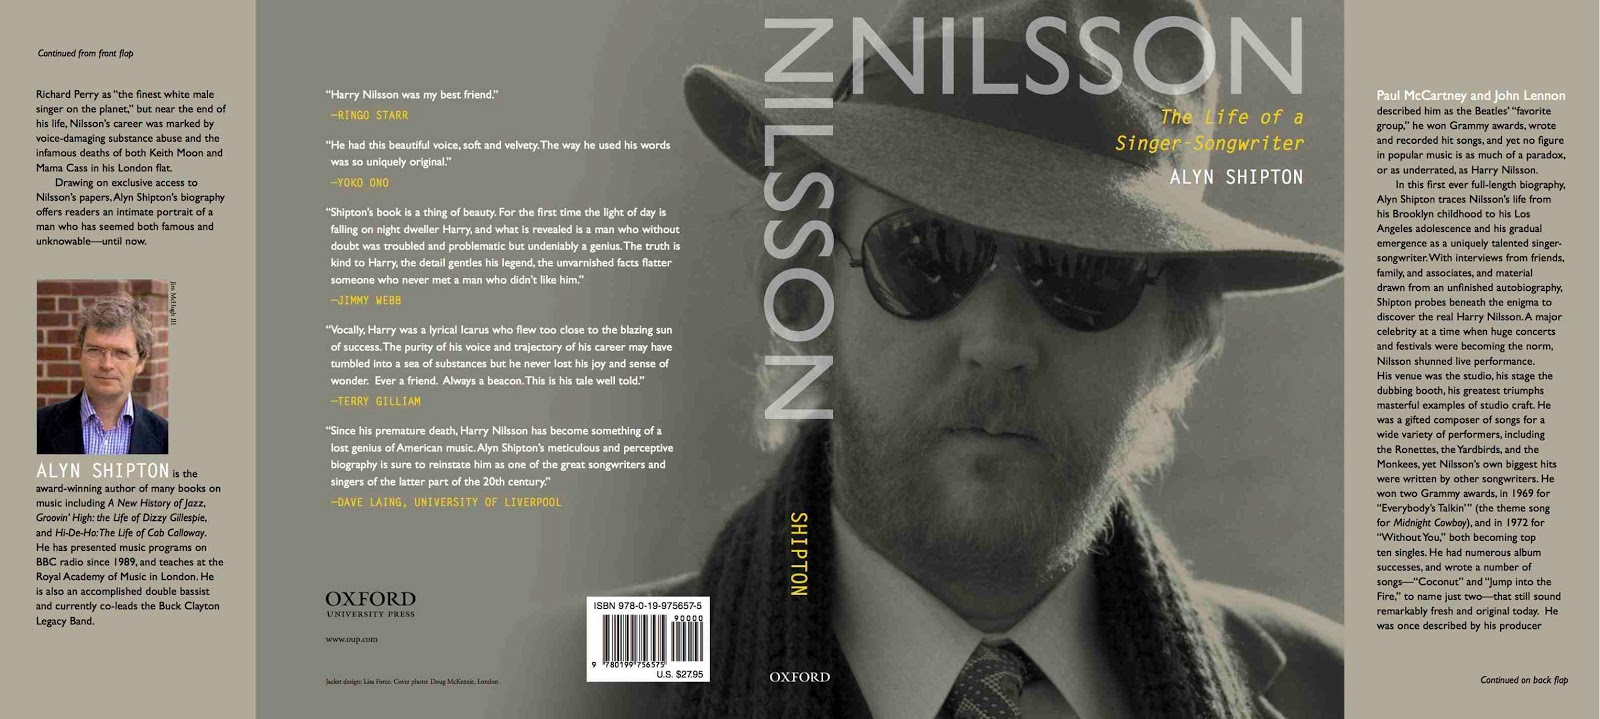 'Nilsson: The Life of a Singer-Songwriter' Named Book Of The Week By BBC Radio 4